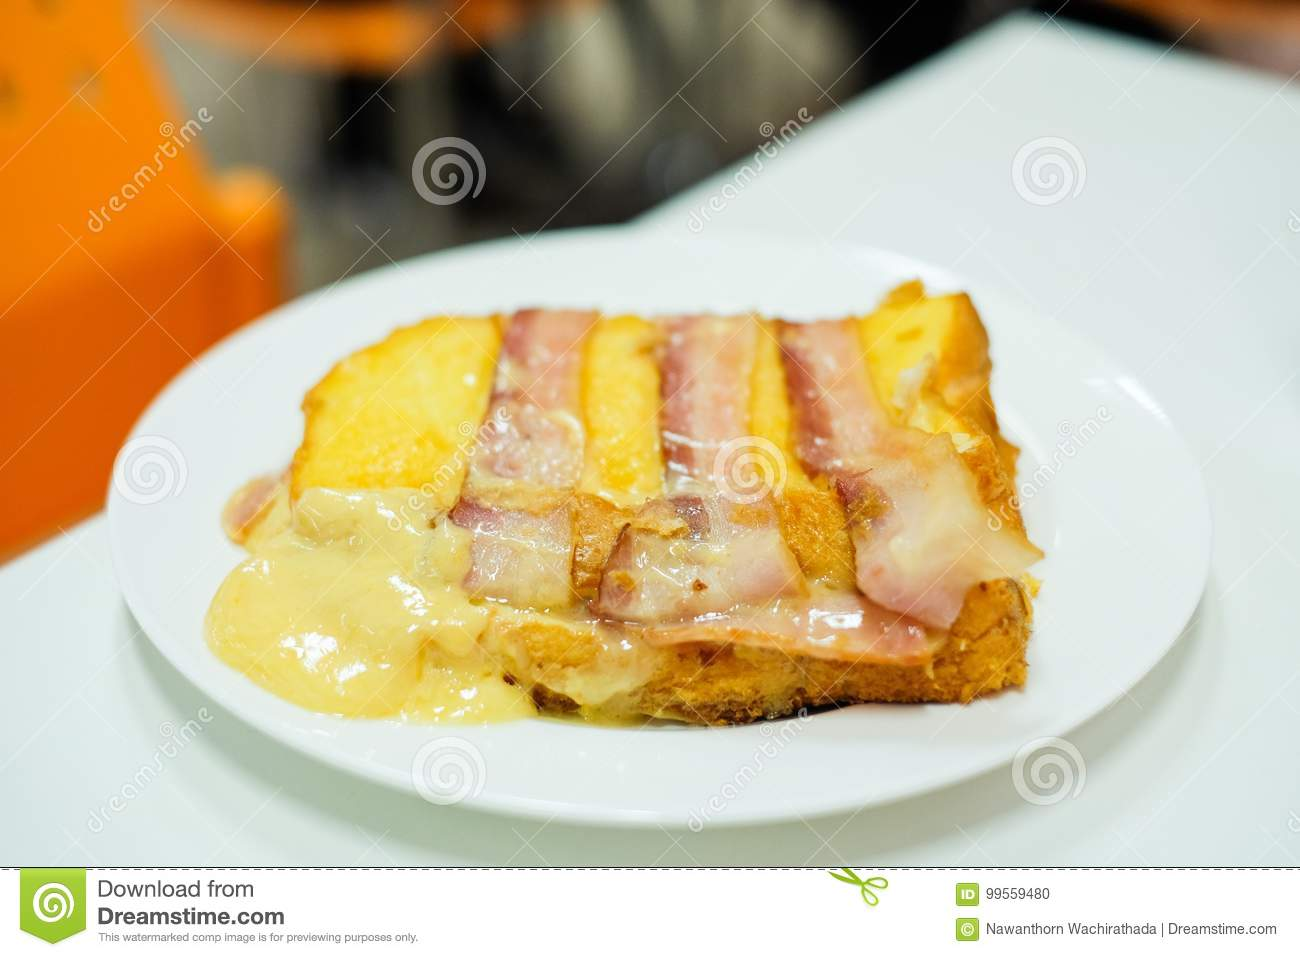 Homemade `Bacon and Ham put on bread with cheddar & mozzarella cheese` serve on